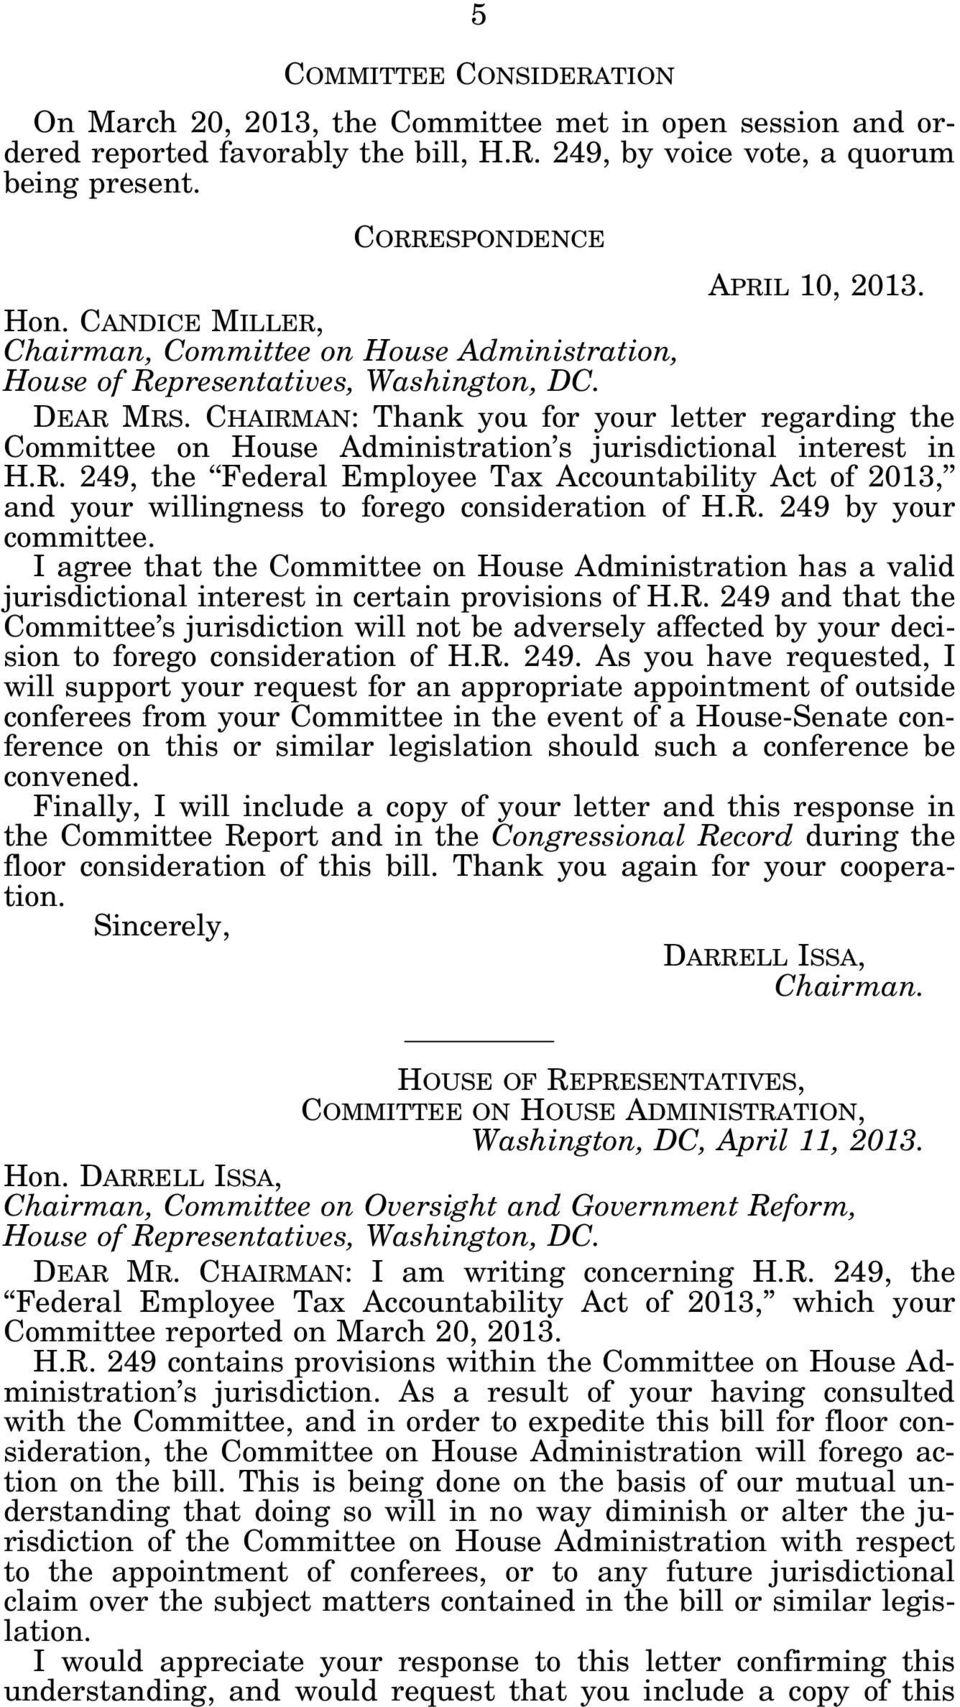 CHAIRMAN: Thank you for your letter regarding the Committee on House Administration s jurisdictional interest in H.R. 249, the Federal Employee Tax Accountability Act of 2013, and your willingness to forego consideration of H.